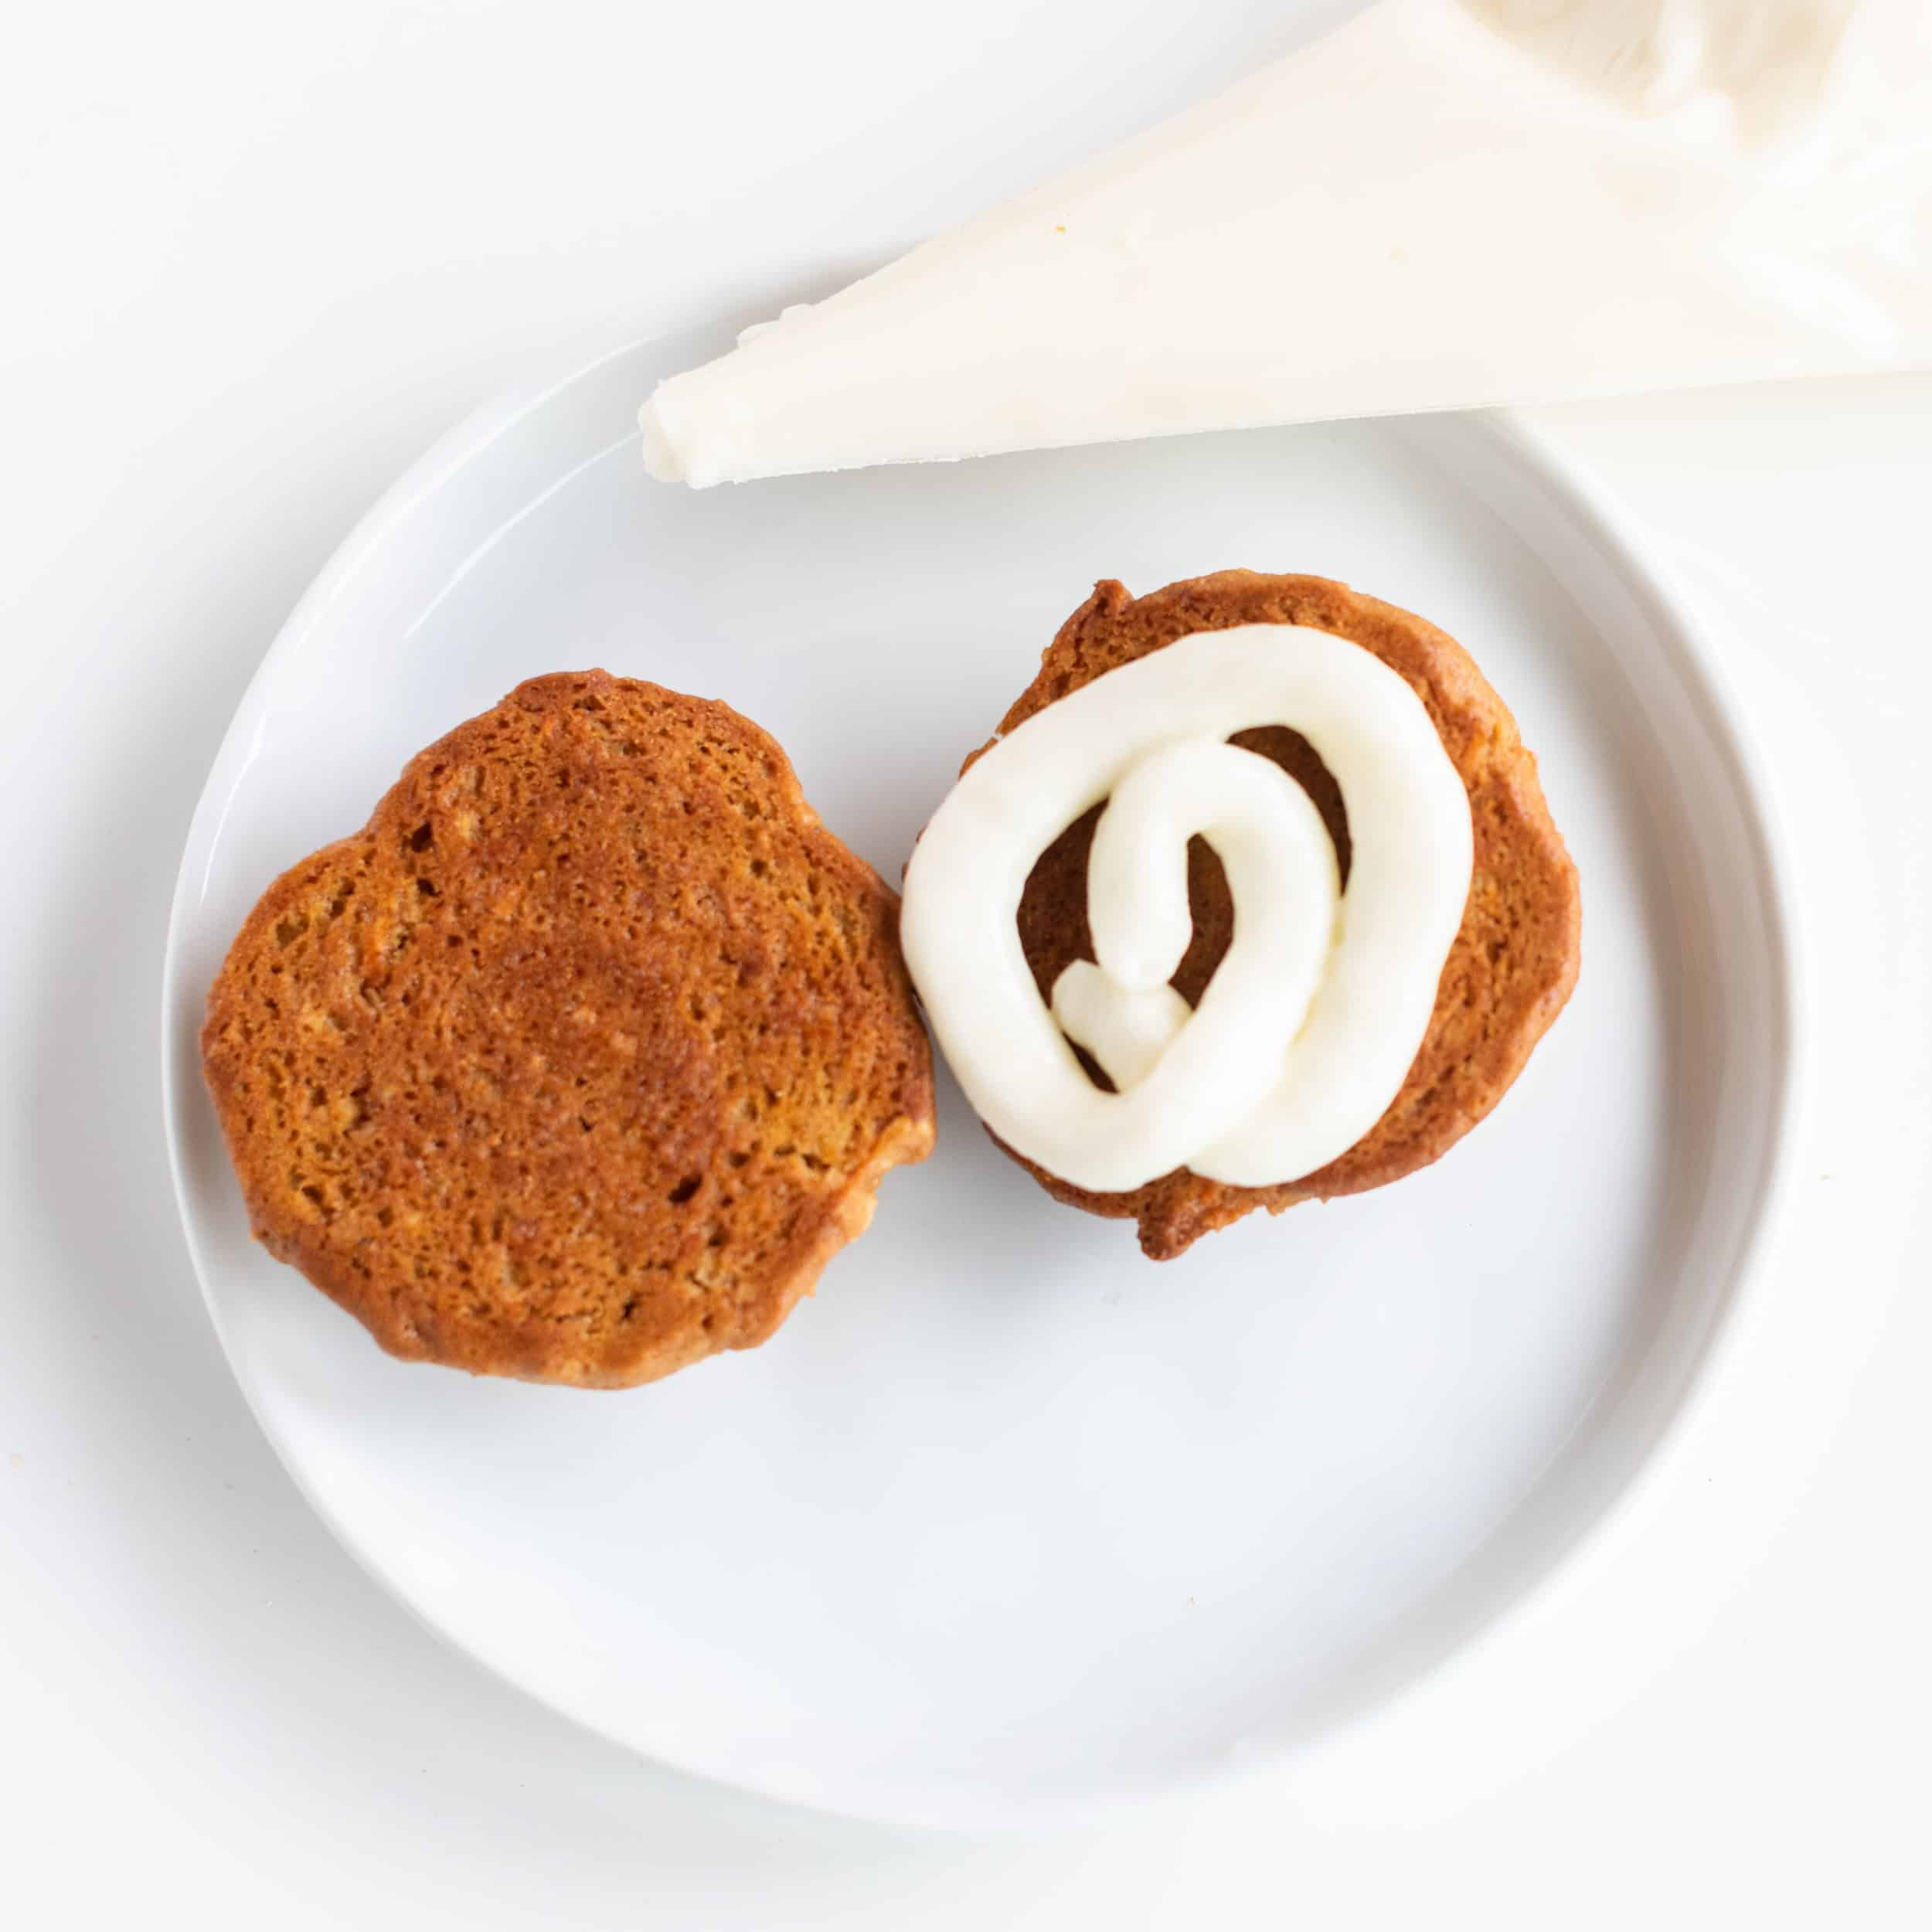 Two cookies with cream cheese frosting piped in the middle to sandwich them on white plate